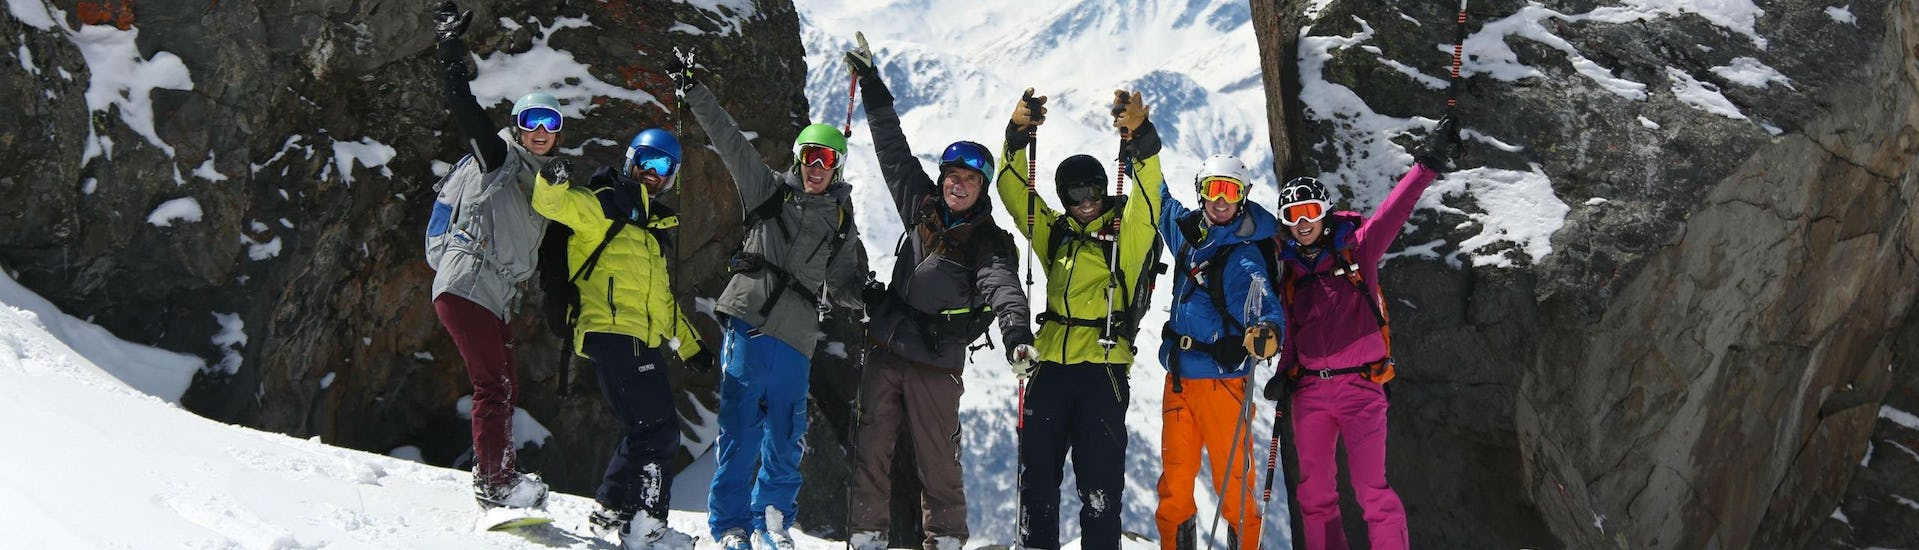 A group of skiers and their ski instructor from Prosneige Méribel are posing together in the snow while enjoying one of their ski lessons.